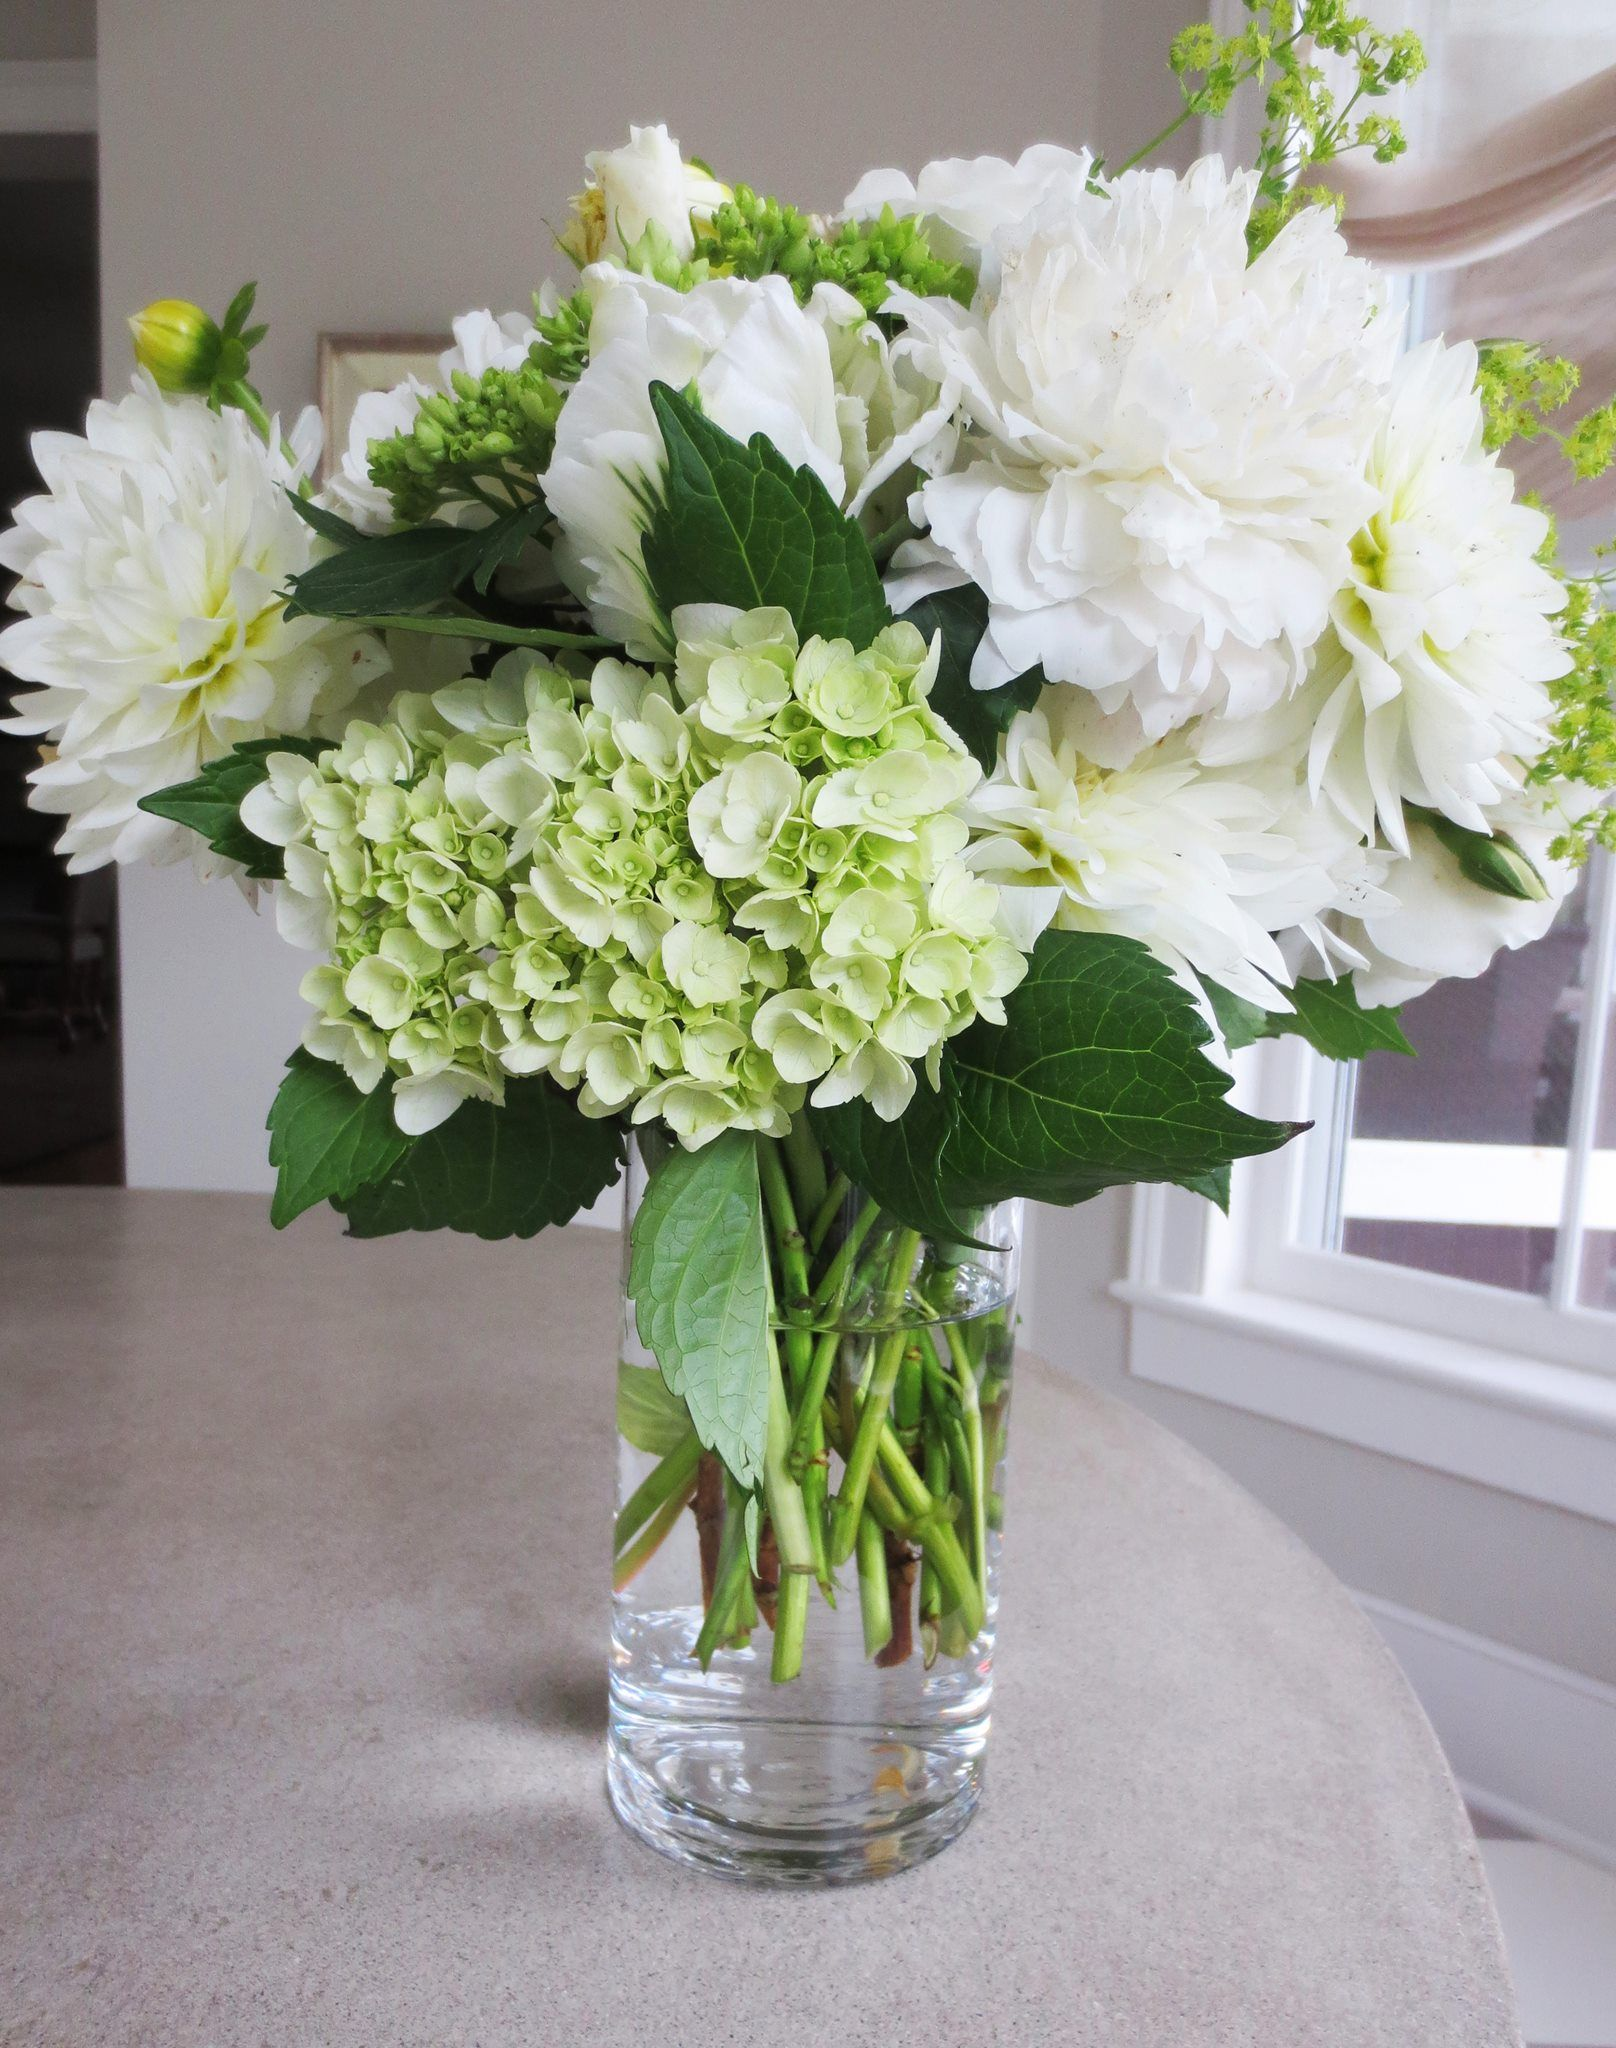 Flower Arranging Isn T Easy So I Have A Few Simple Rules